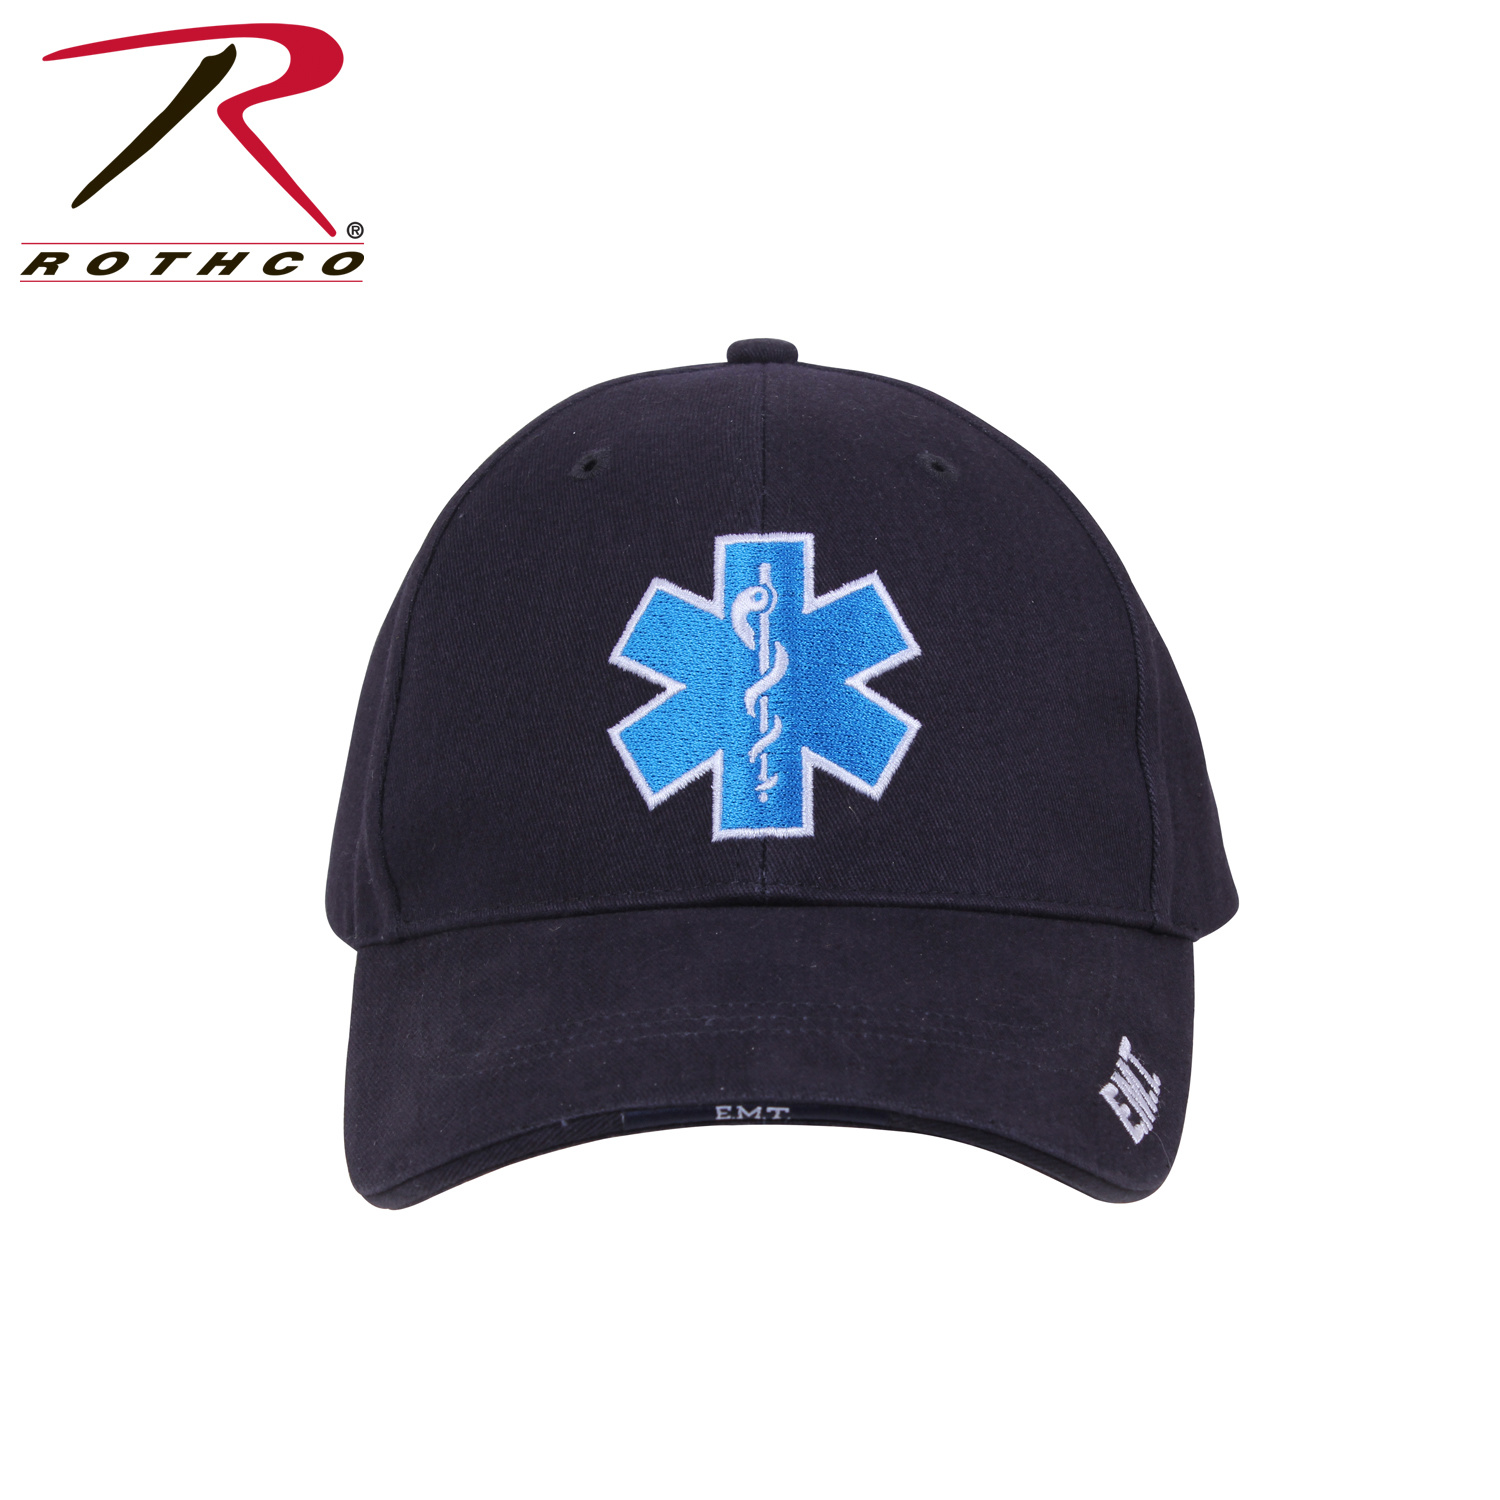 Rothco Deluxe Star of Life Low Profile Cap